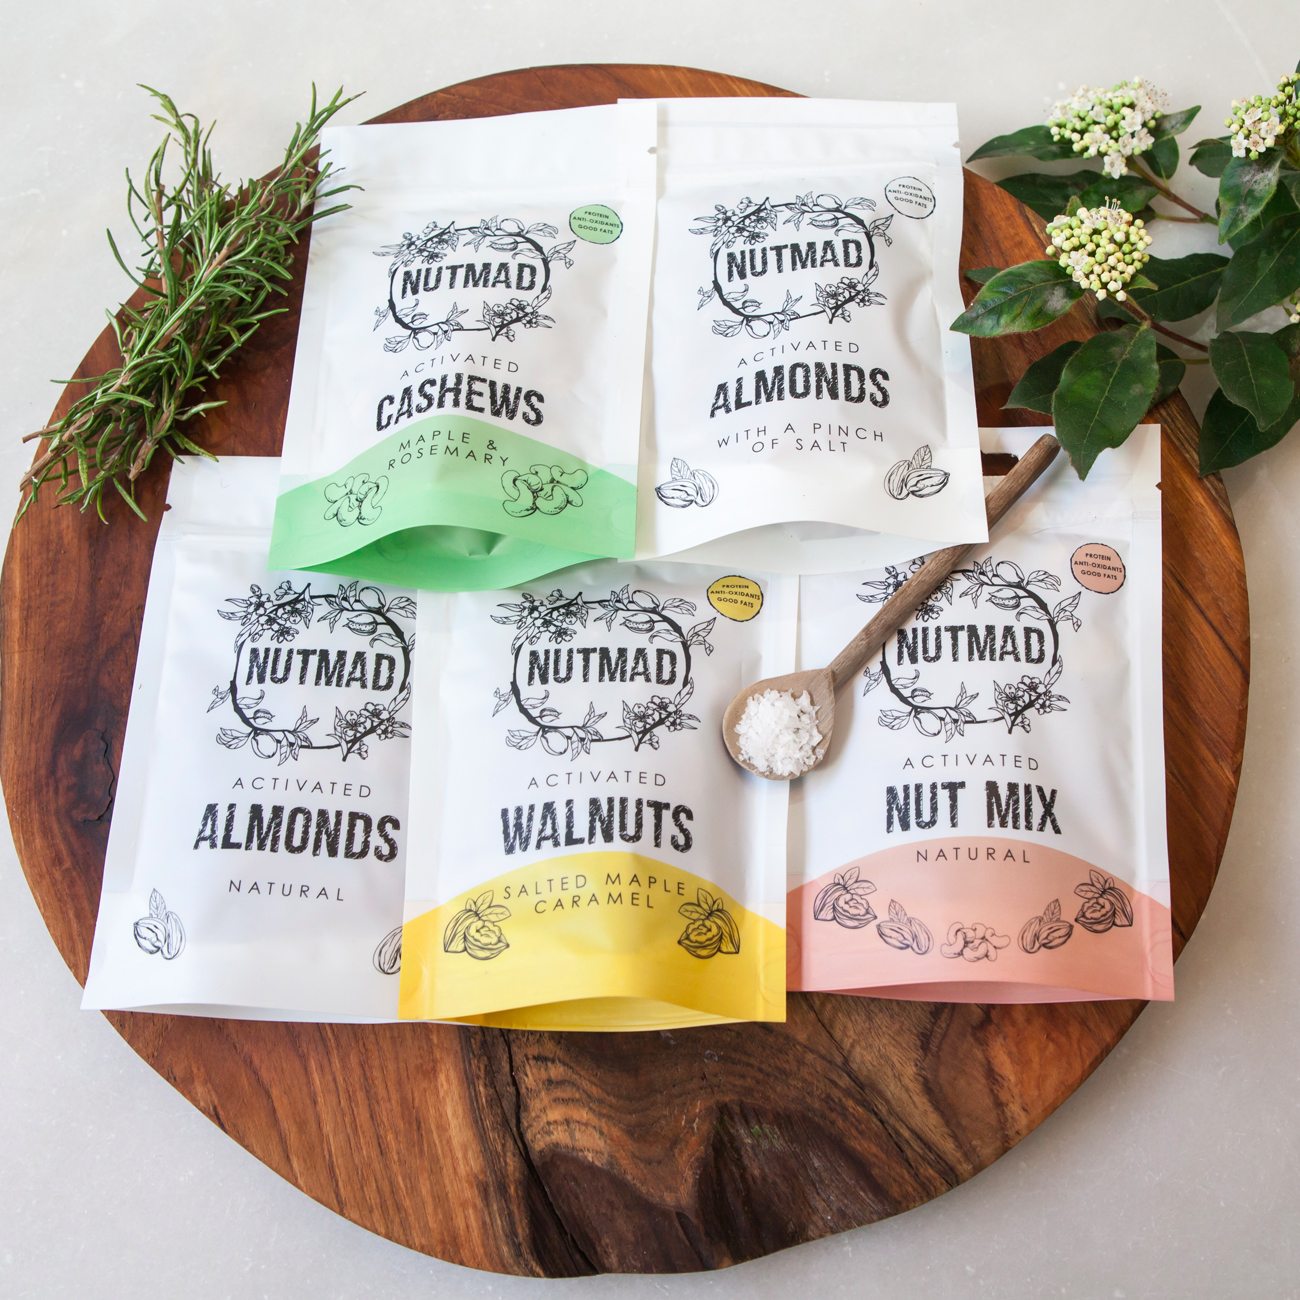 Nutmad Healthy snack box